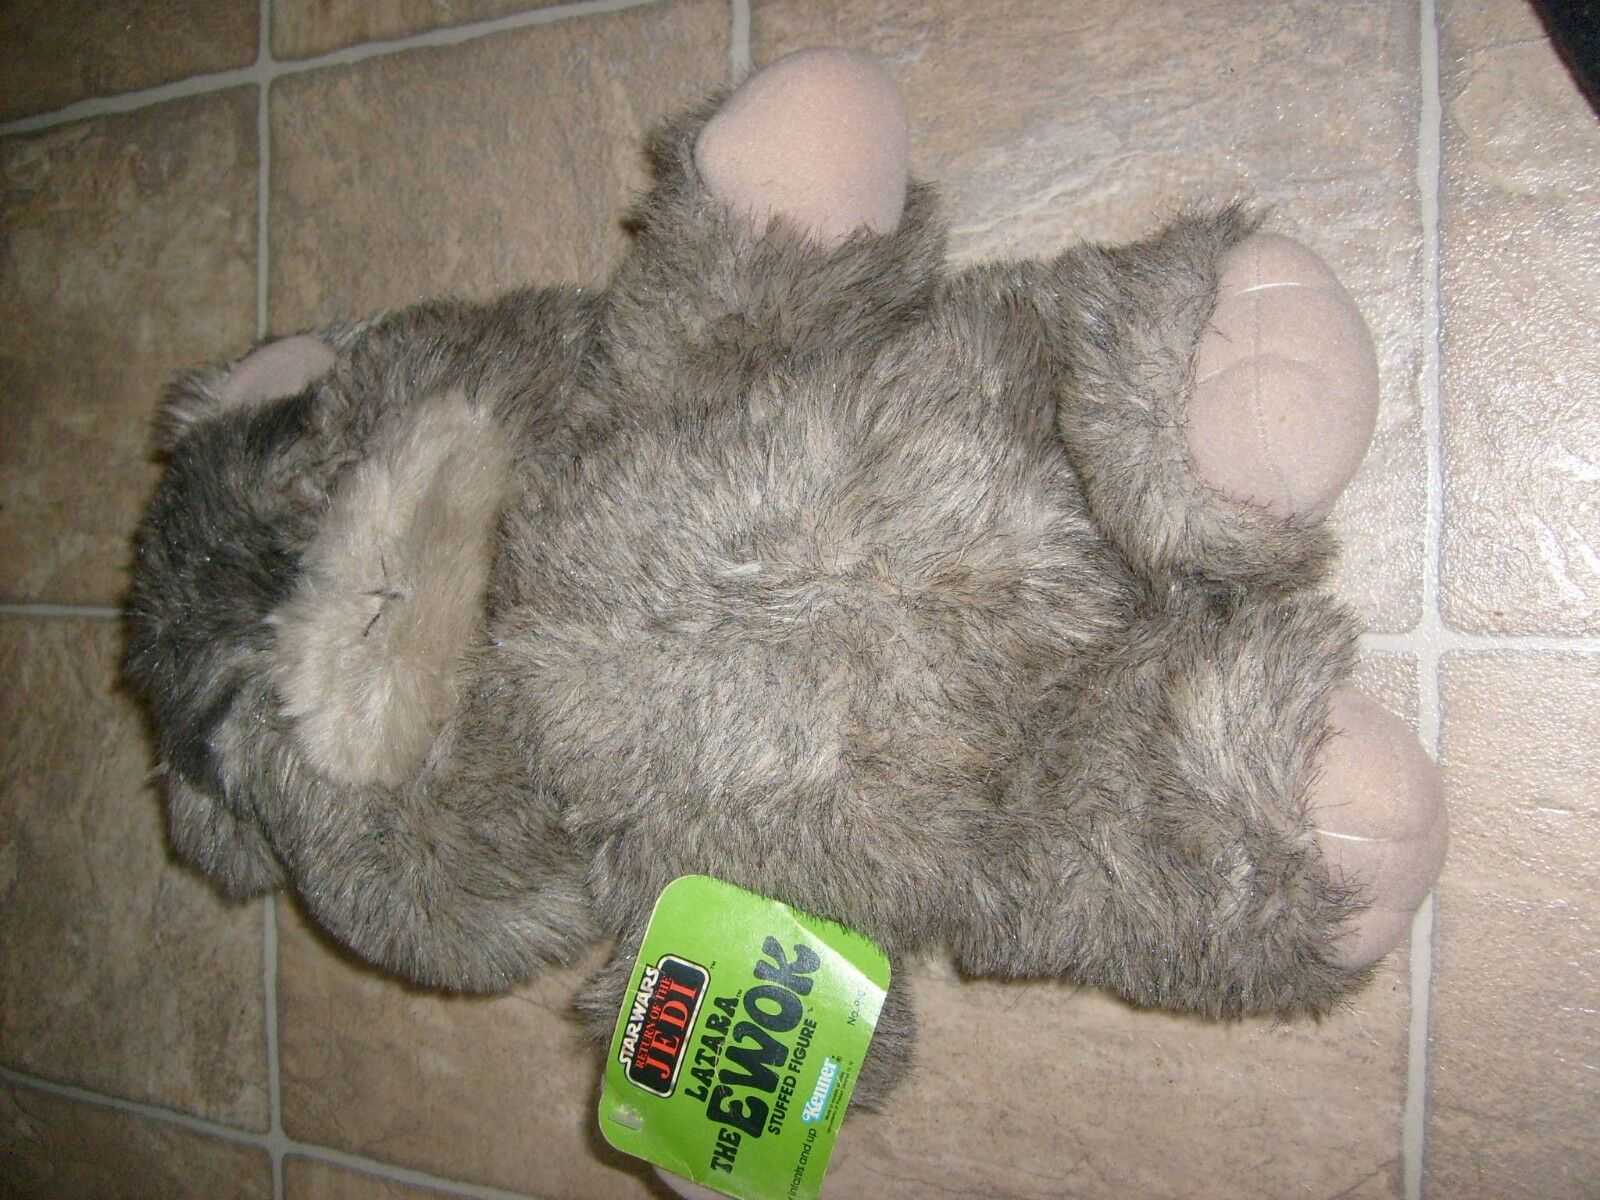 Star Wars Vintage Kenner Kenner Kenner Latara EWOK With Tag Return Of The Jedi Plush Figure a73cba